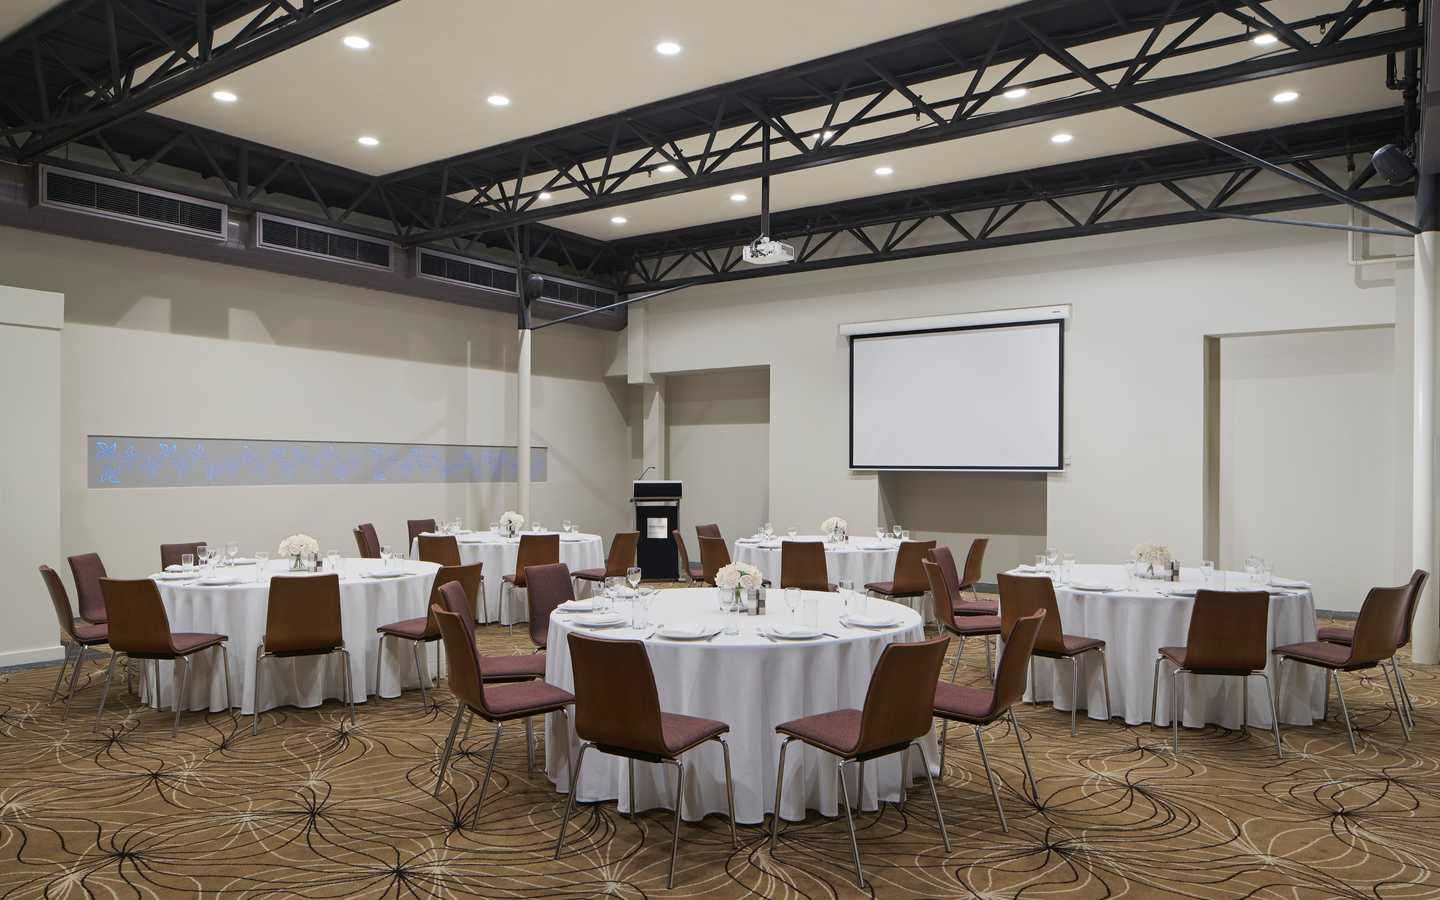 Subiaco Meeting Room